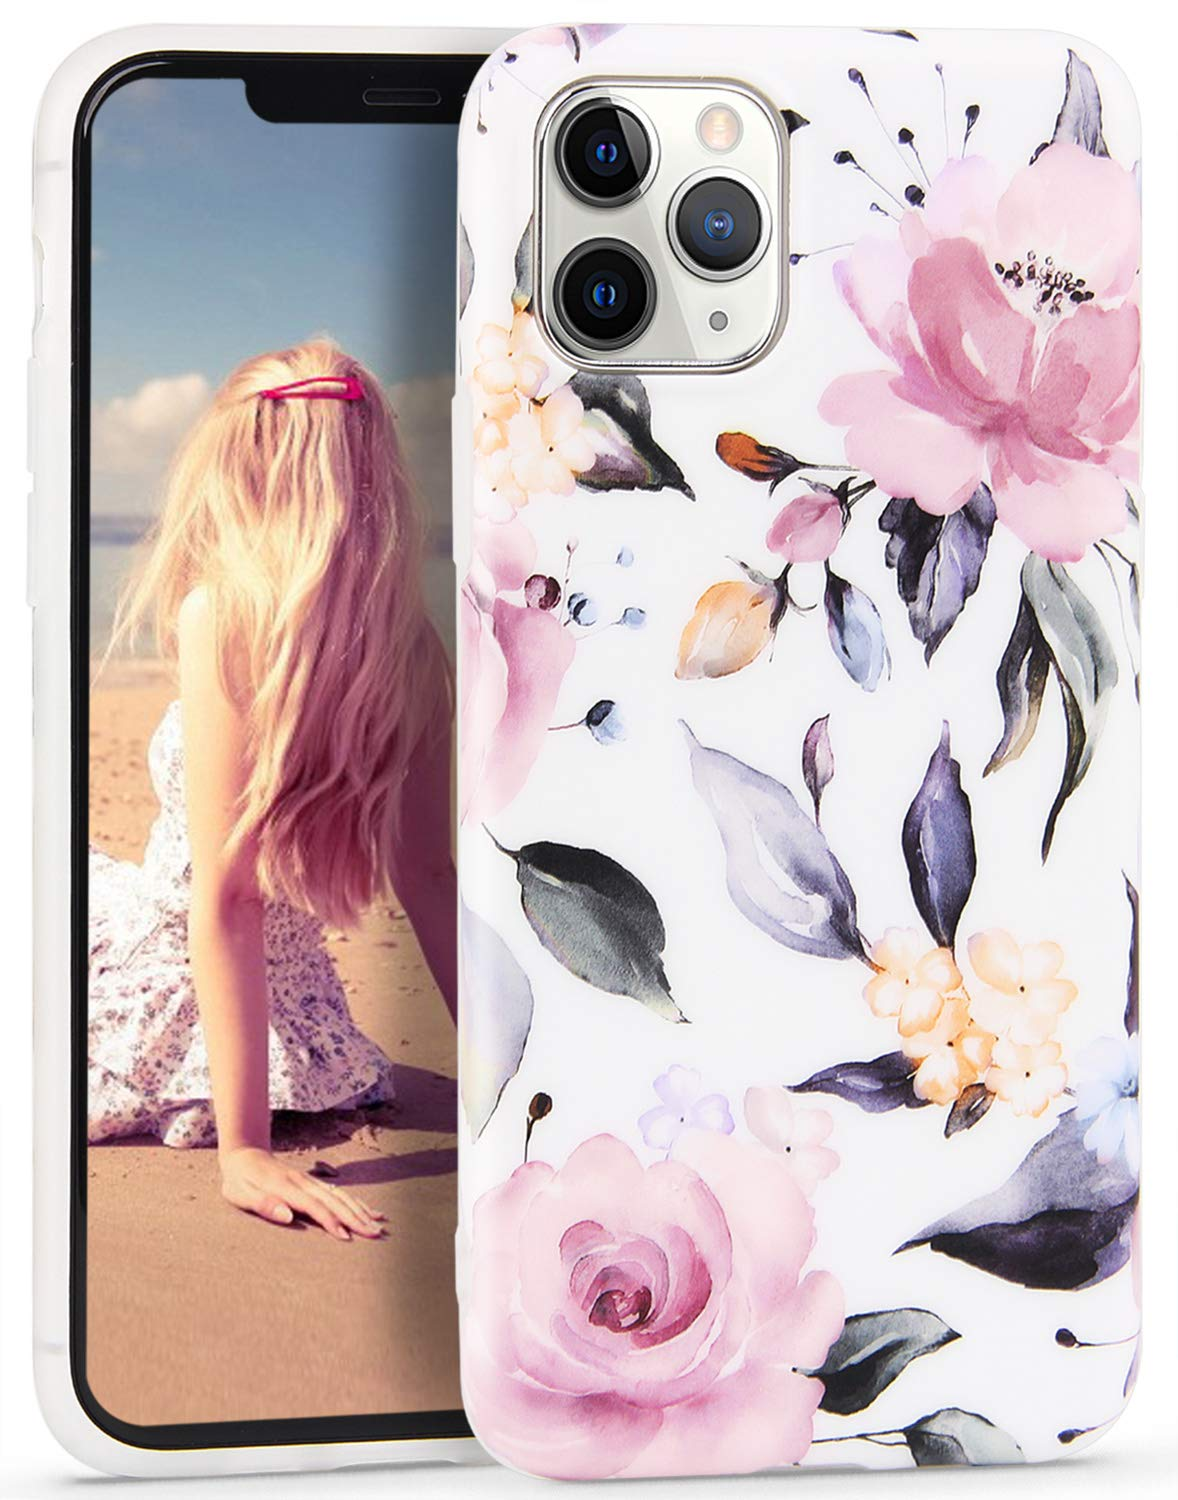 iPhone 11 Pro Case Marble,Imikoko Ultra Slim Fit Soft TPU Matte Marble Floral Case,Protective Shockproof Anti-Scratch Case Cover for iPhone 11 Pro 5.8 inch